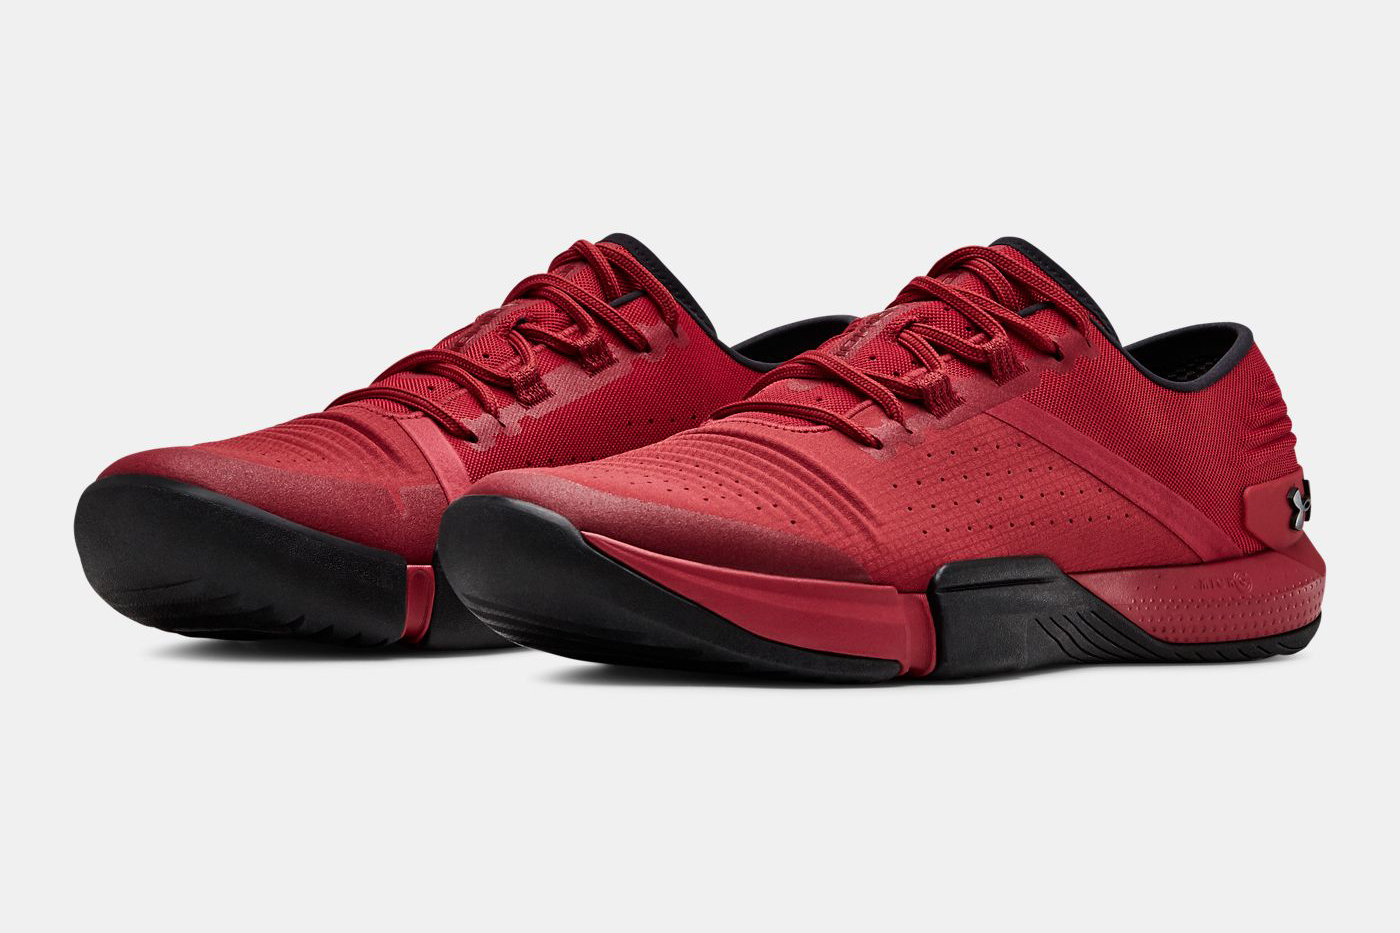 new under armour shoes